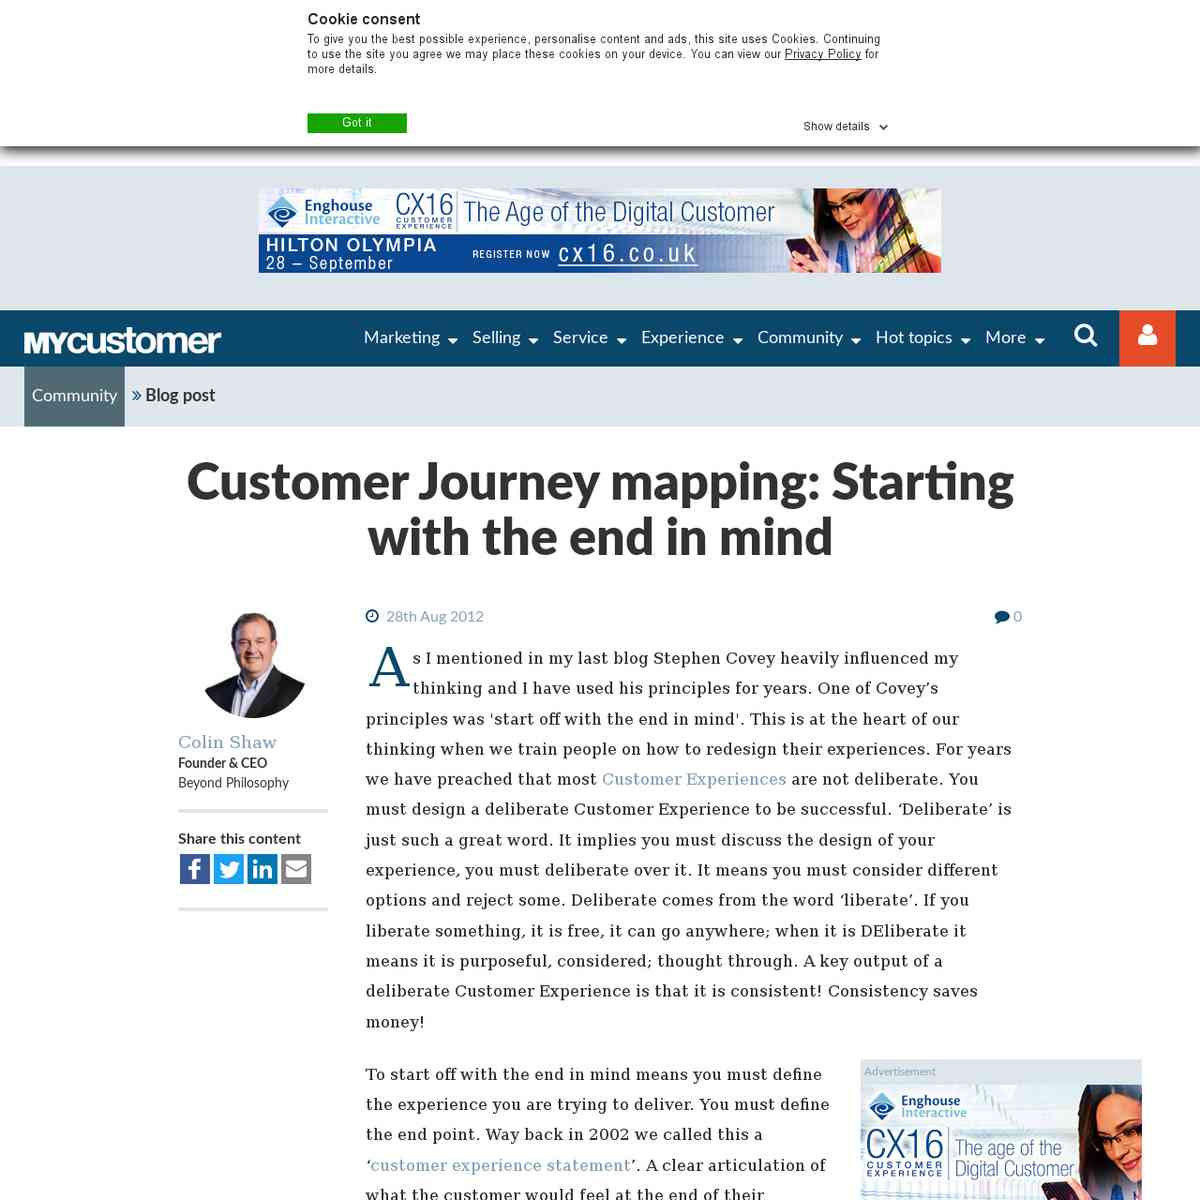 Customer Journey mapping: Starting with the end in mind